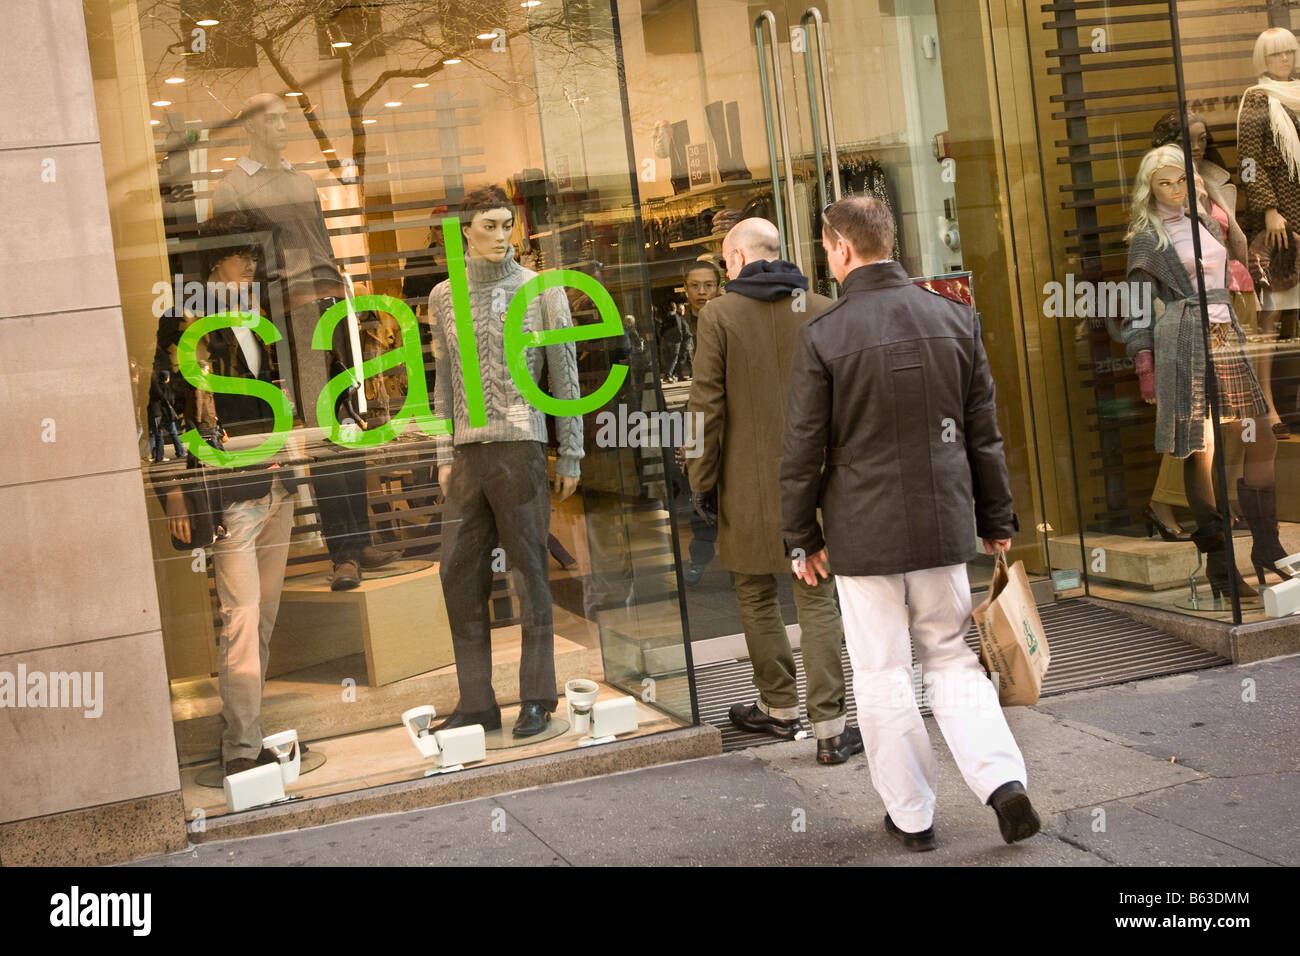 Men enter a clothes store with sale sign in window on 5th Avenue New York USA 23 November 2008 - Stock Image